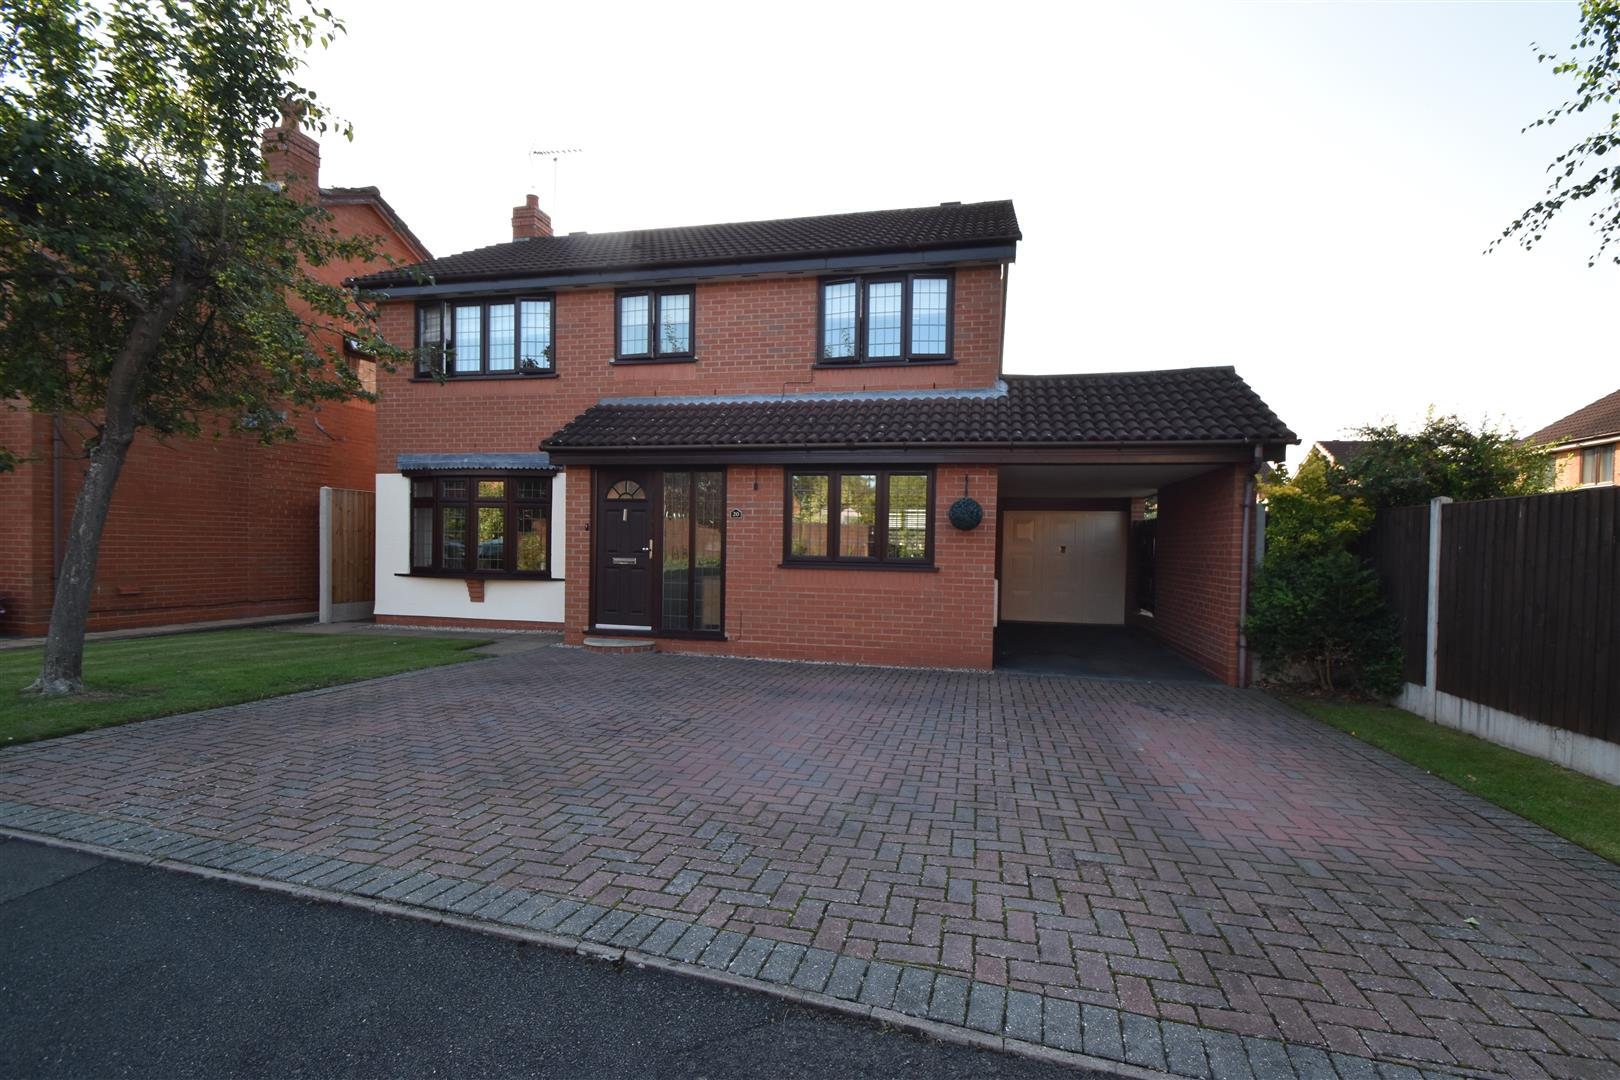 4 Bedrooms Property for sale in Brunel Close, Stourport-On-Severn